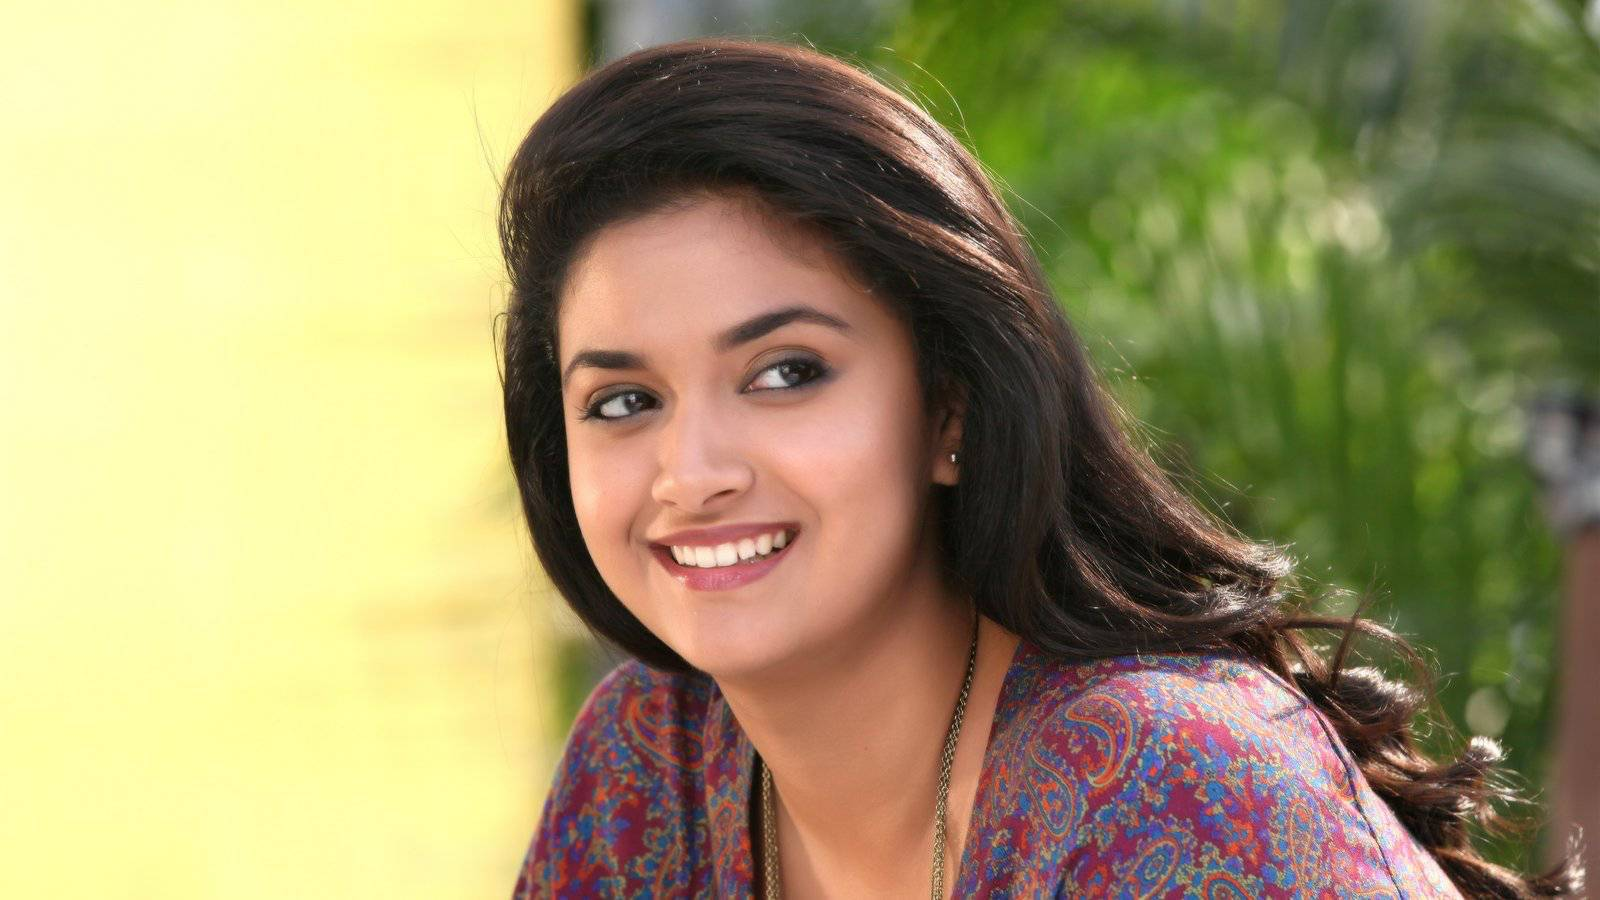 3 Hd Keerthy Suresh Wallpapers Hdwallsource Com